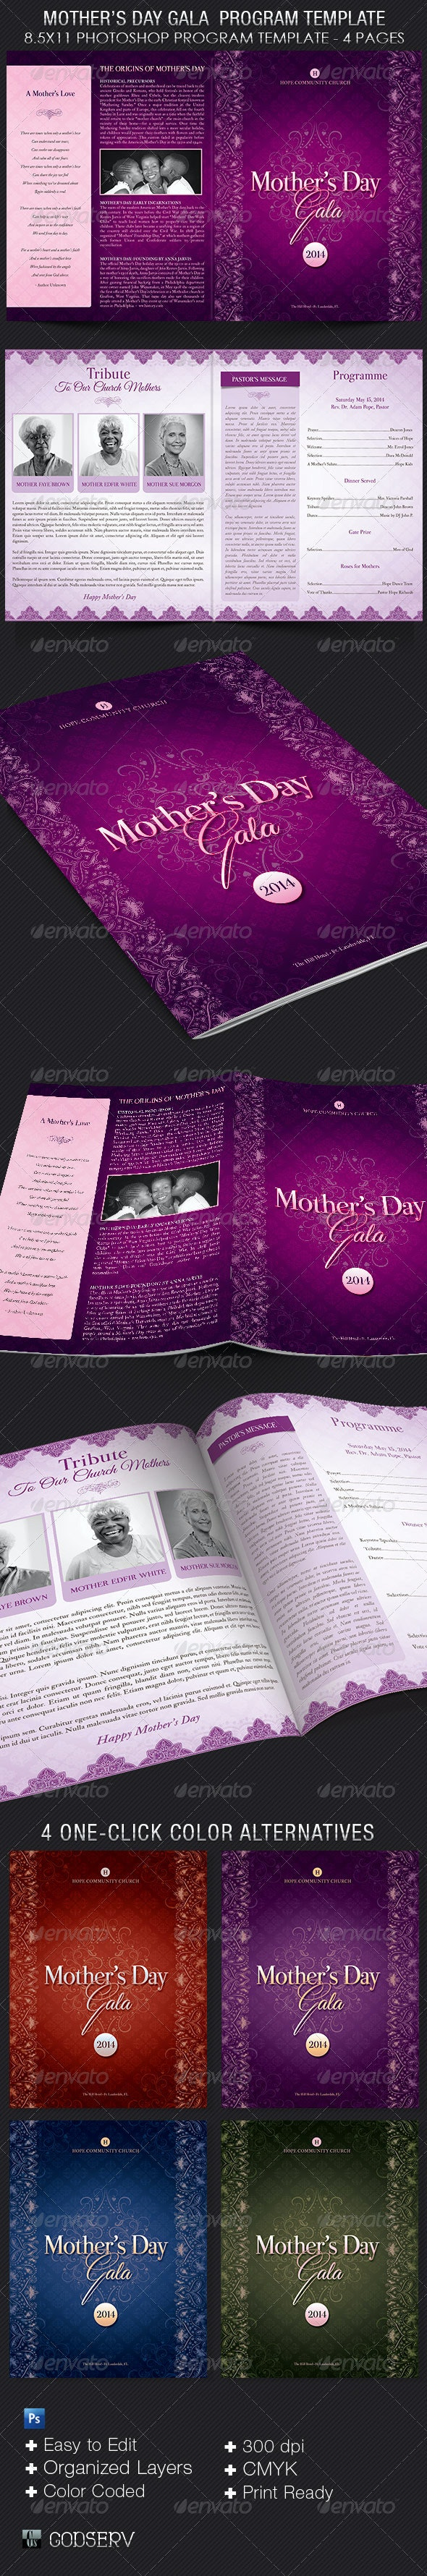 Lavender Mothers Day Gala Program Template - Informational Brochures